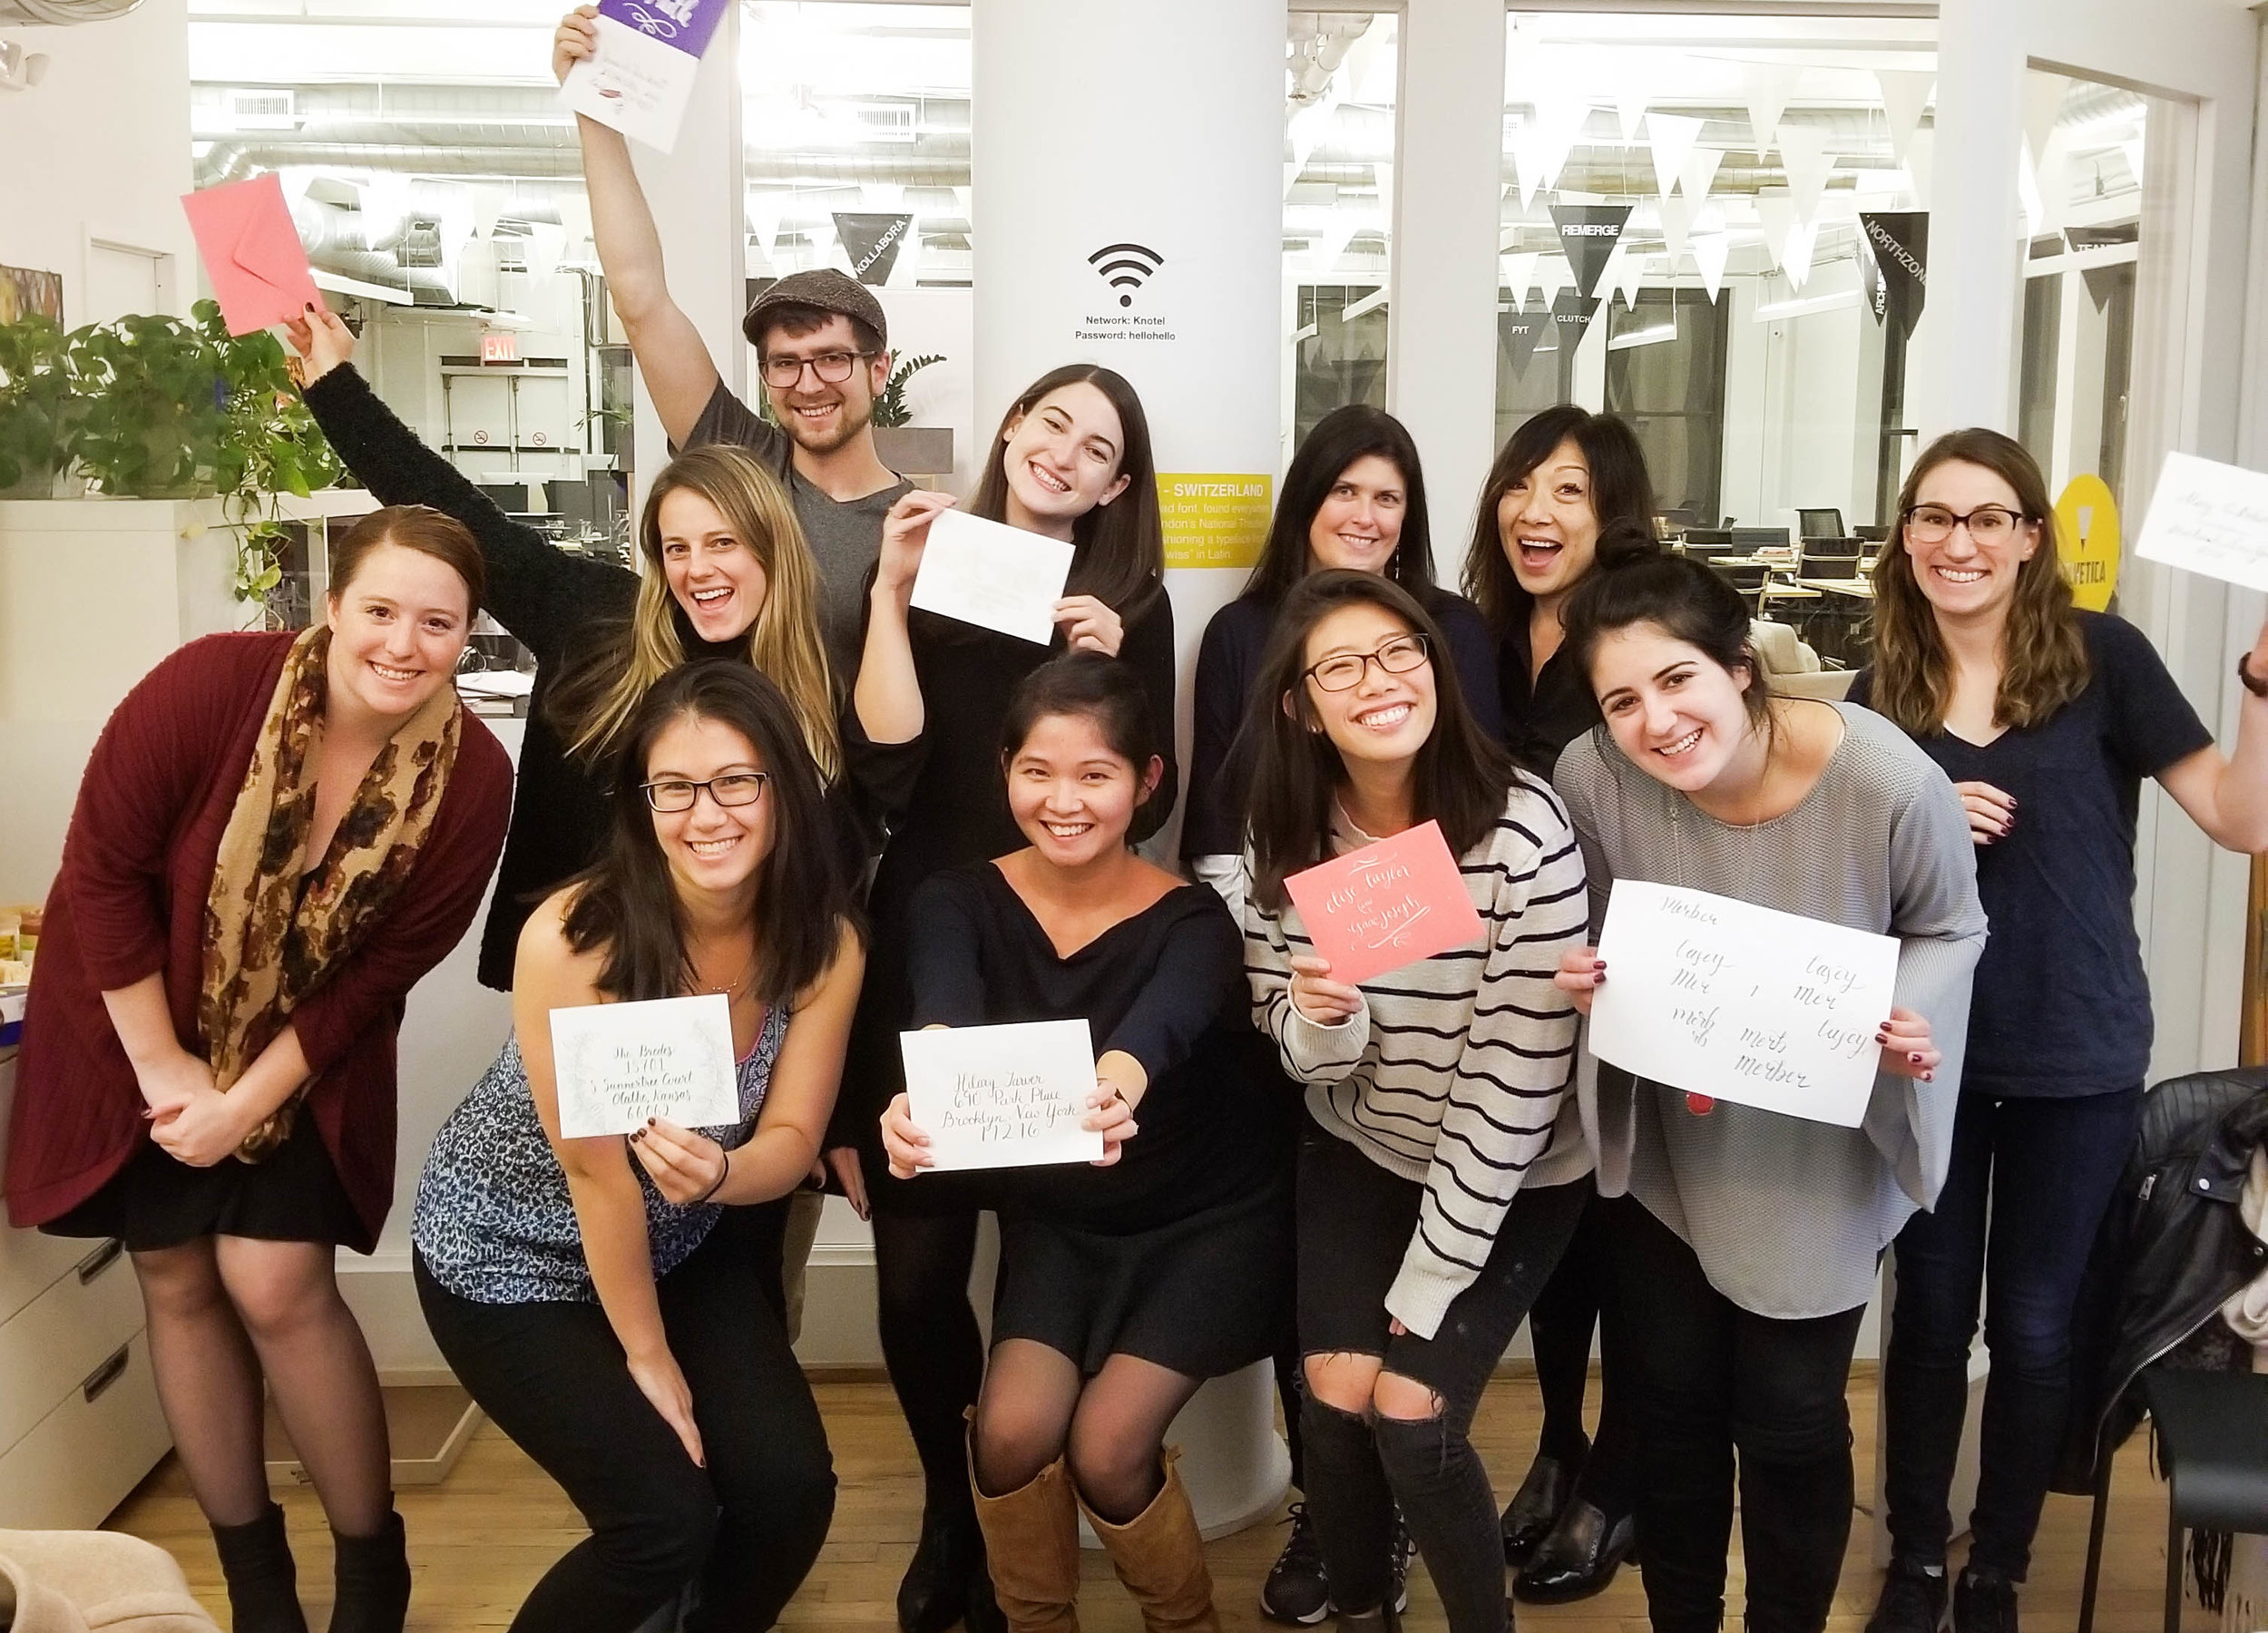 Corporate Workshop - Learning Calligraphy is the ultimate team-building activity! Your team will learn new skills and discover the meditative powers of practicing penmanship together. Final project options include name cards (great for desk decorations!), inspirational sayings, and embossed notecards.